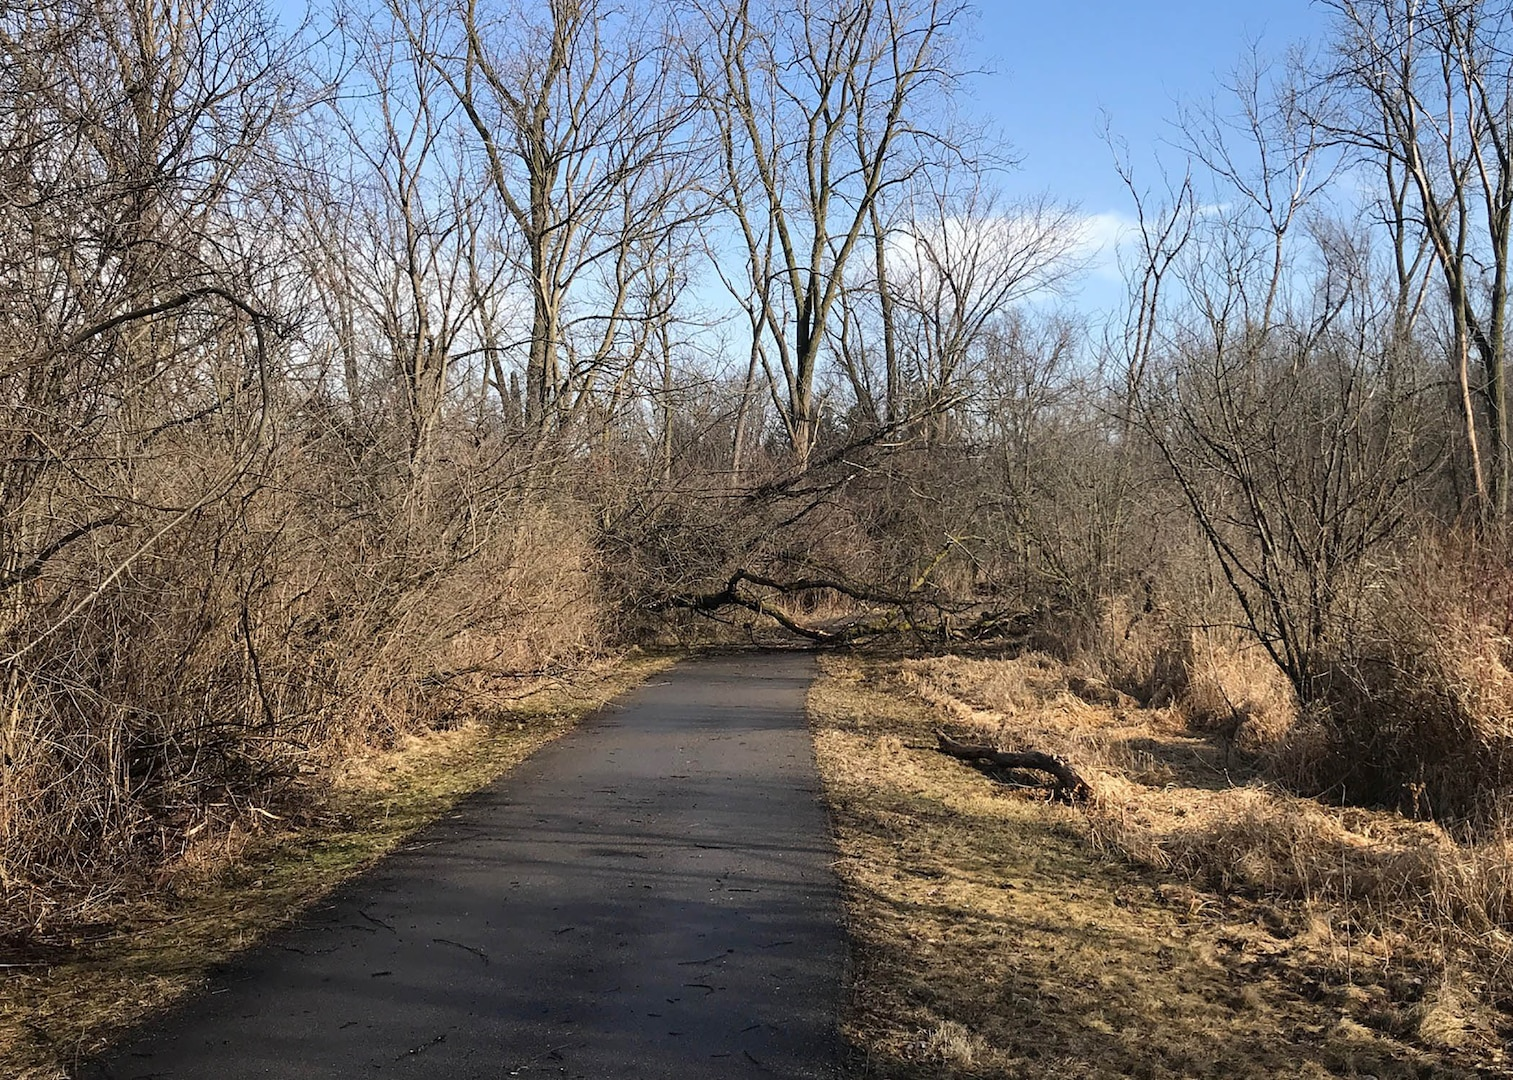 Winter weather puts up obstacles to runners hoping to enjoy their Pi Day run outdoors.